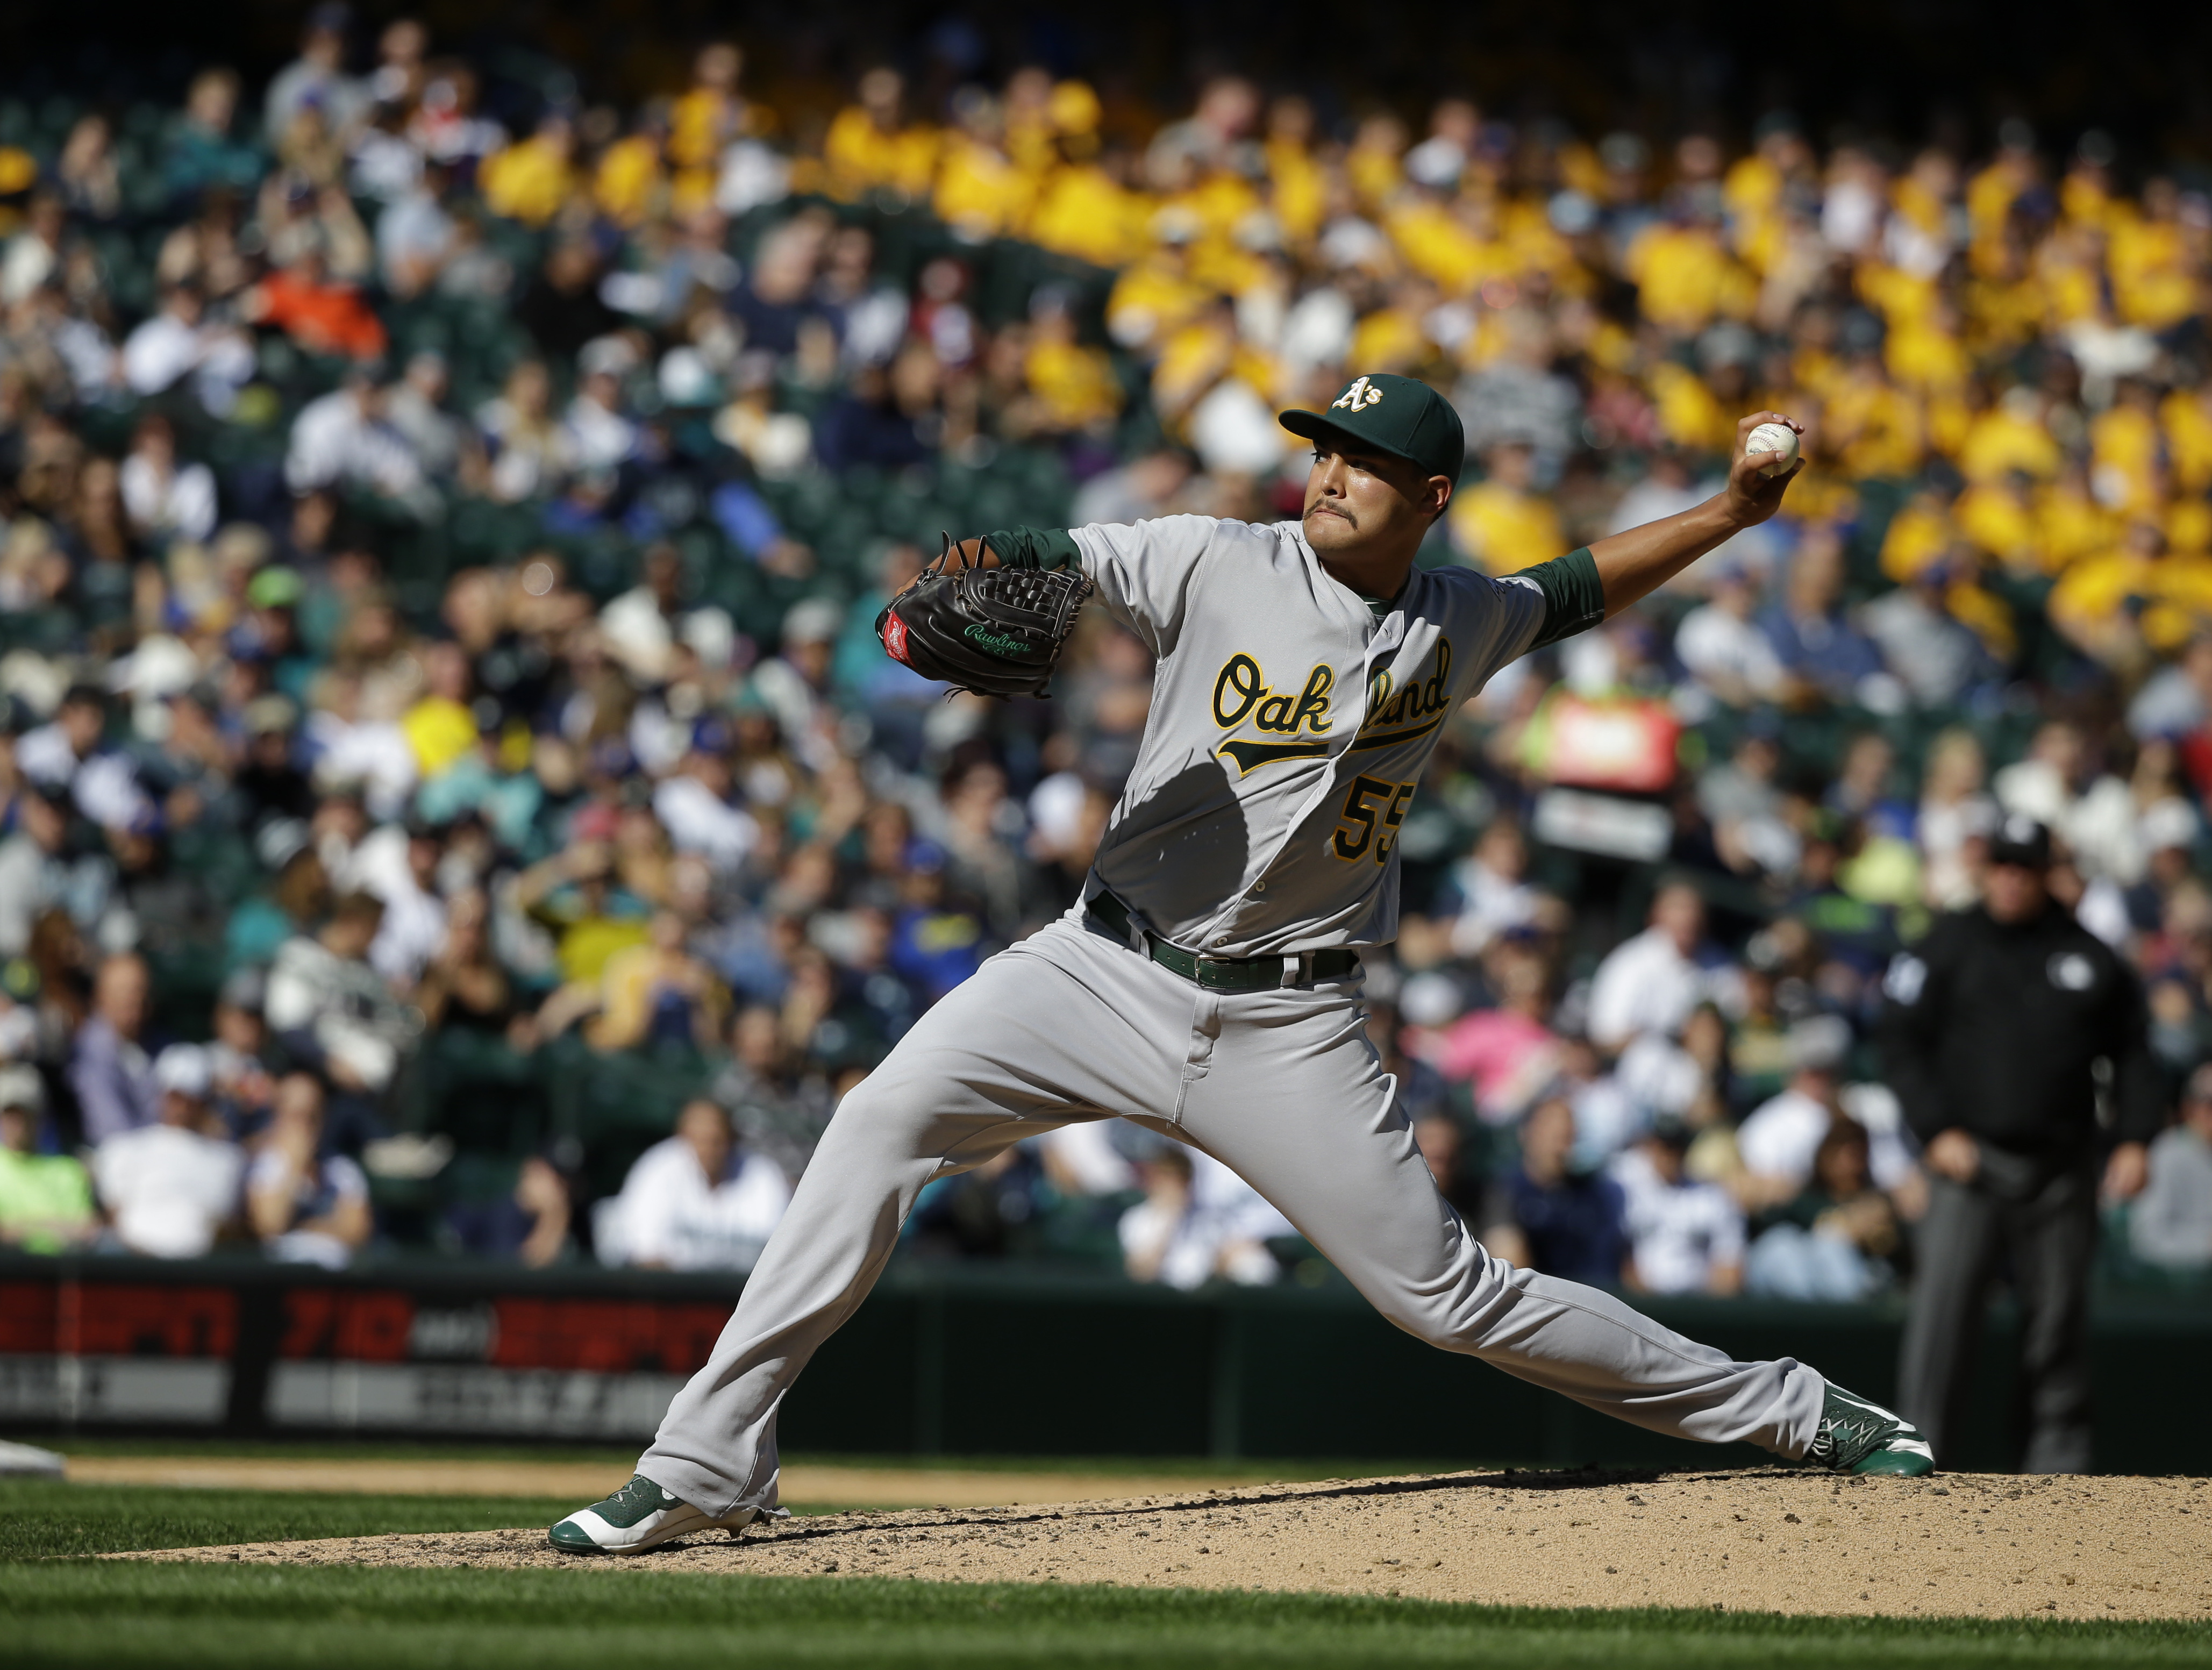 Oakland Athletics starting pitcher Sean Manaea throws against the Seattle Mariners in the fourth inning of a baseball game, Sunday, Oct. 2, 2016, in Seattle. (AP Photo/Ted S. Warren)